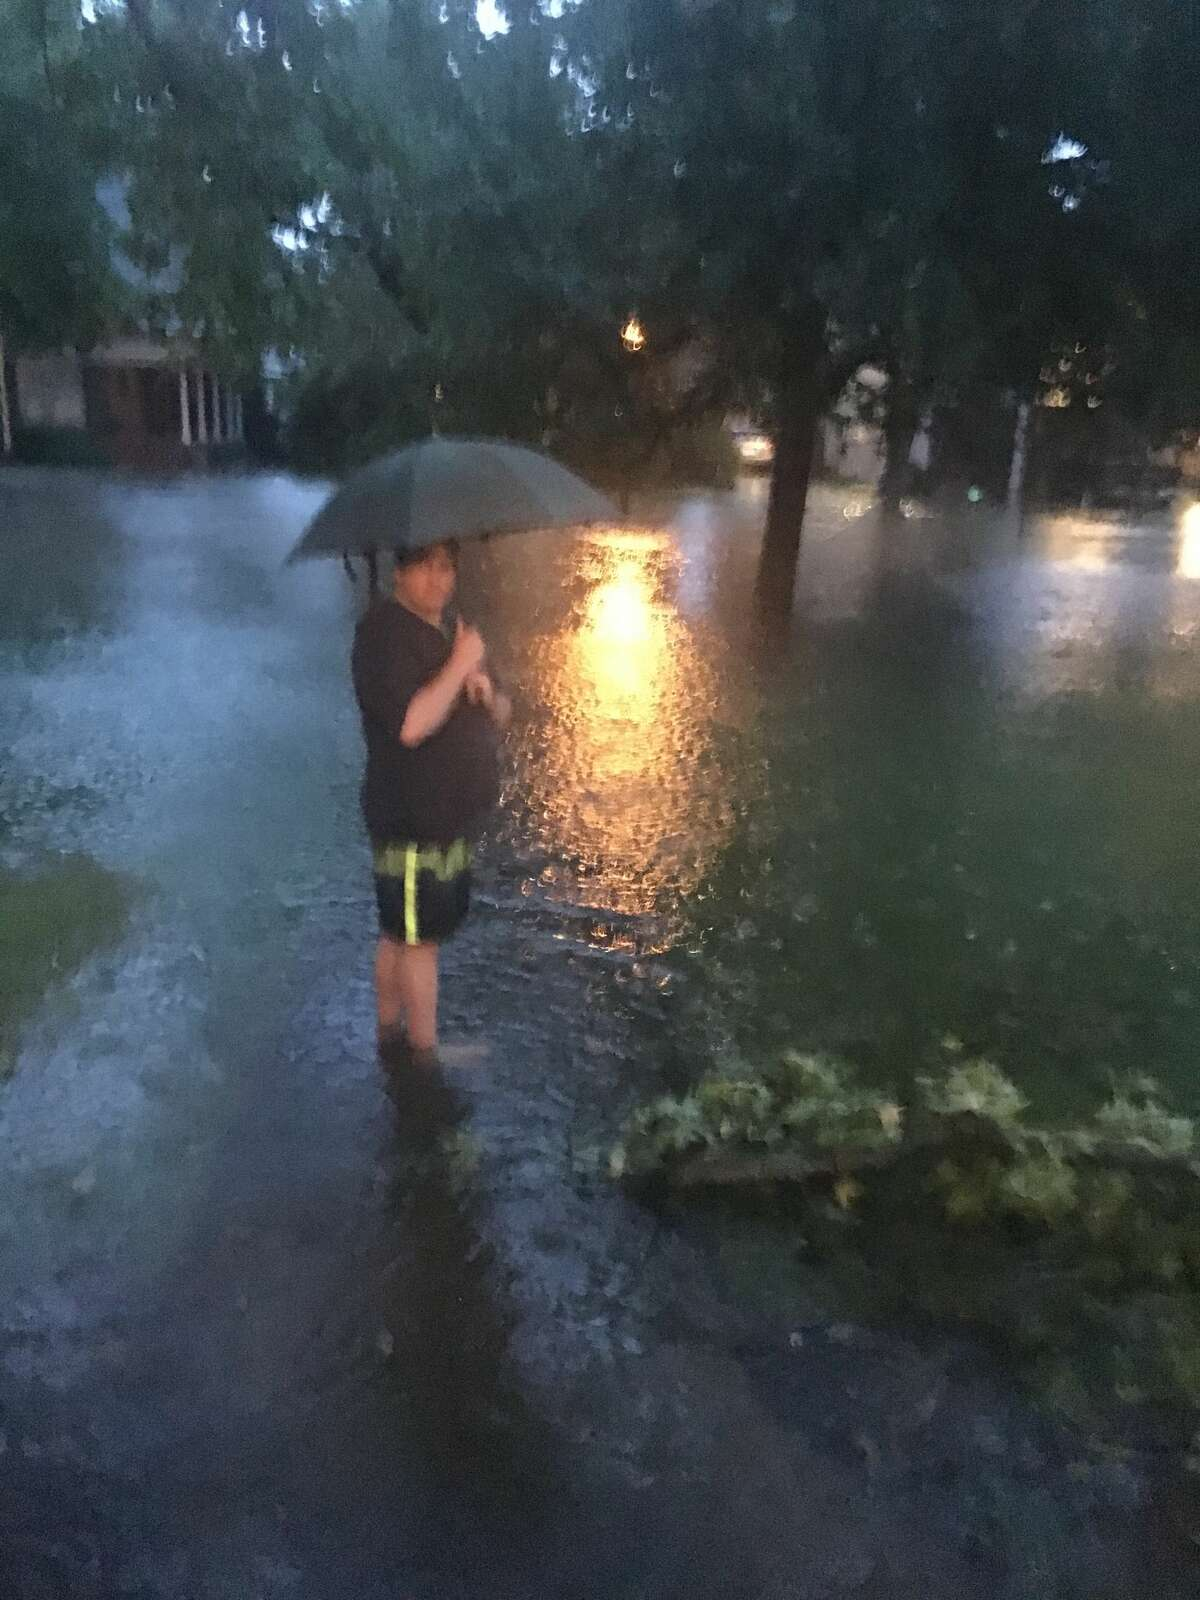 As Hurricane Harvey descends on Houston, residents braving the rain are sharing photos of flooding, damage, and their storm setups.